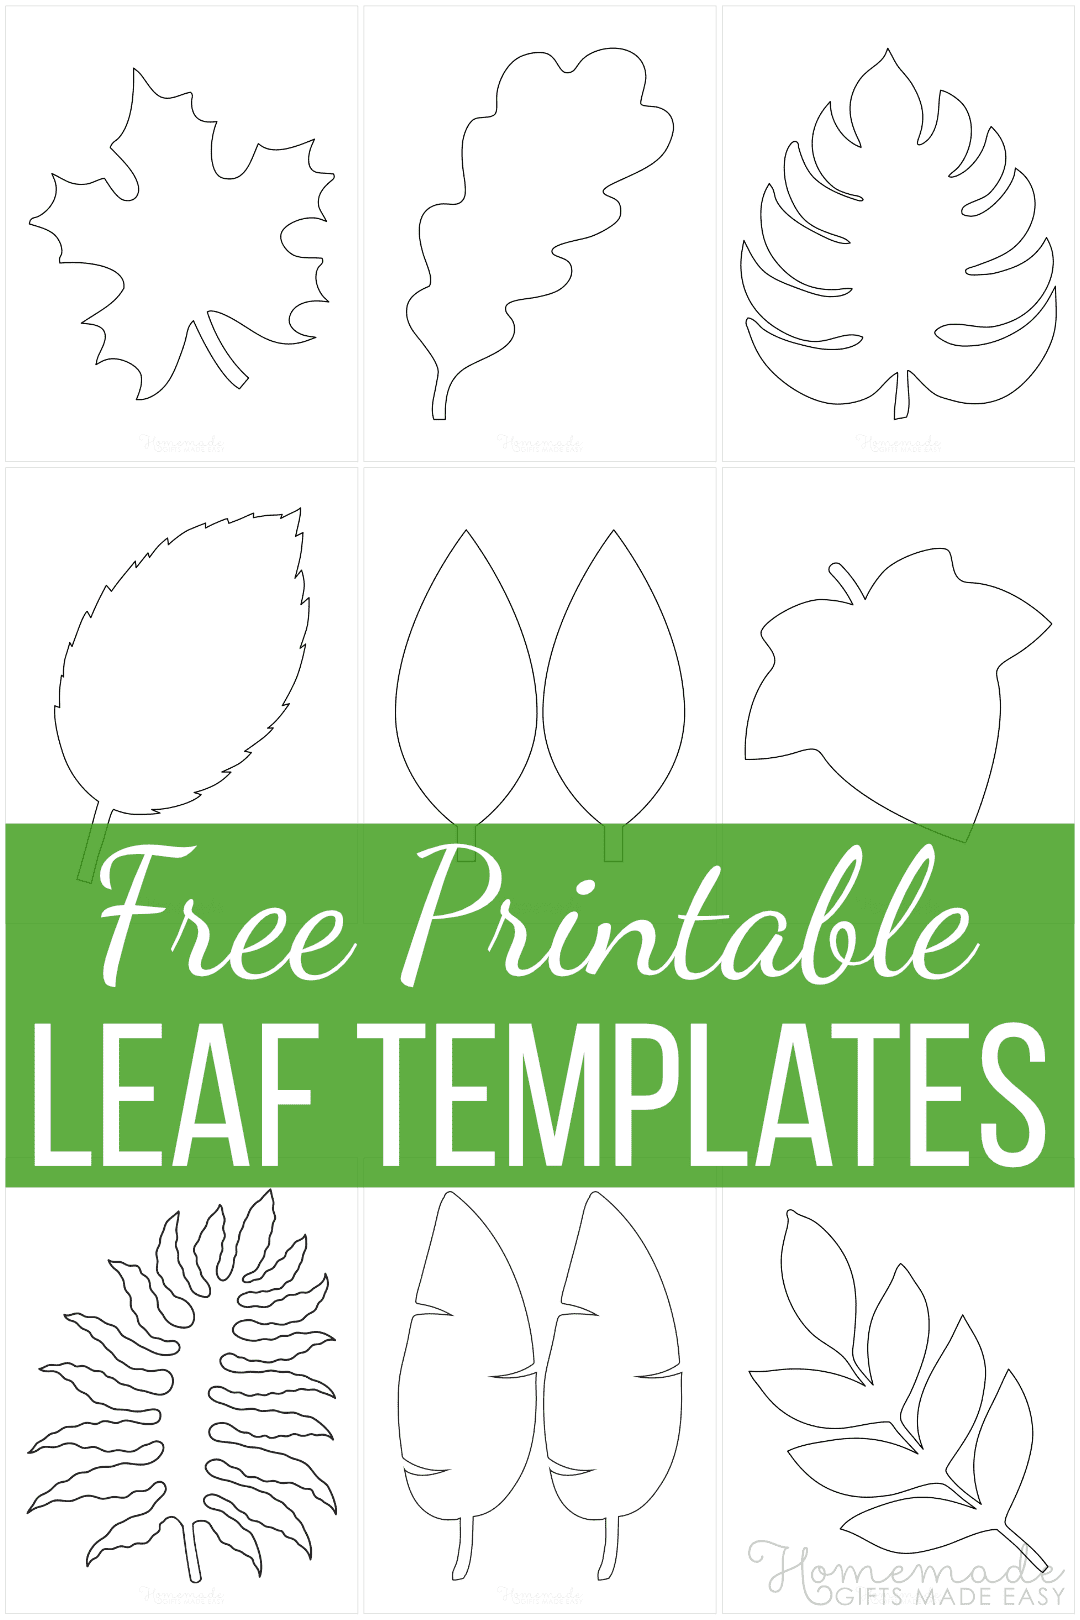 21 Free Leaf Templates Printable Outlines Of Maple Oak Etc For Kids Crafts